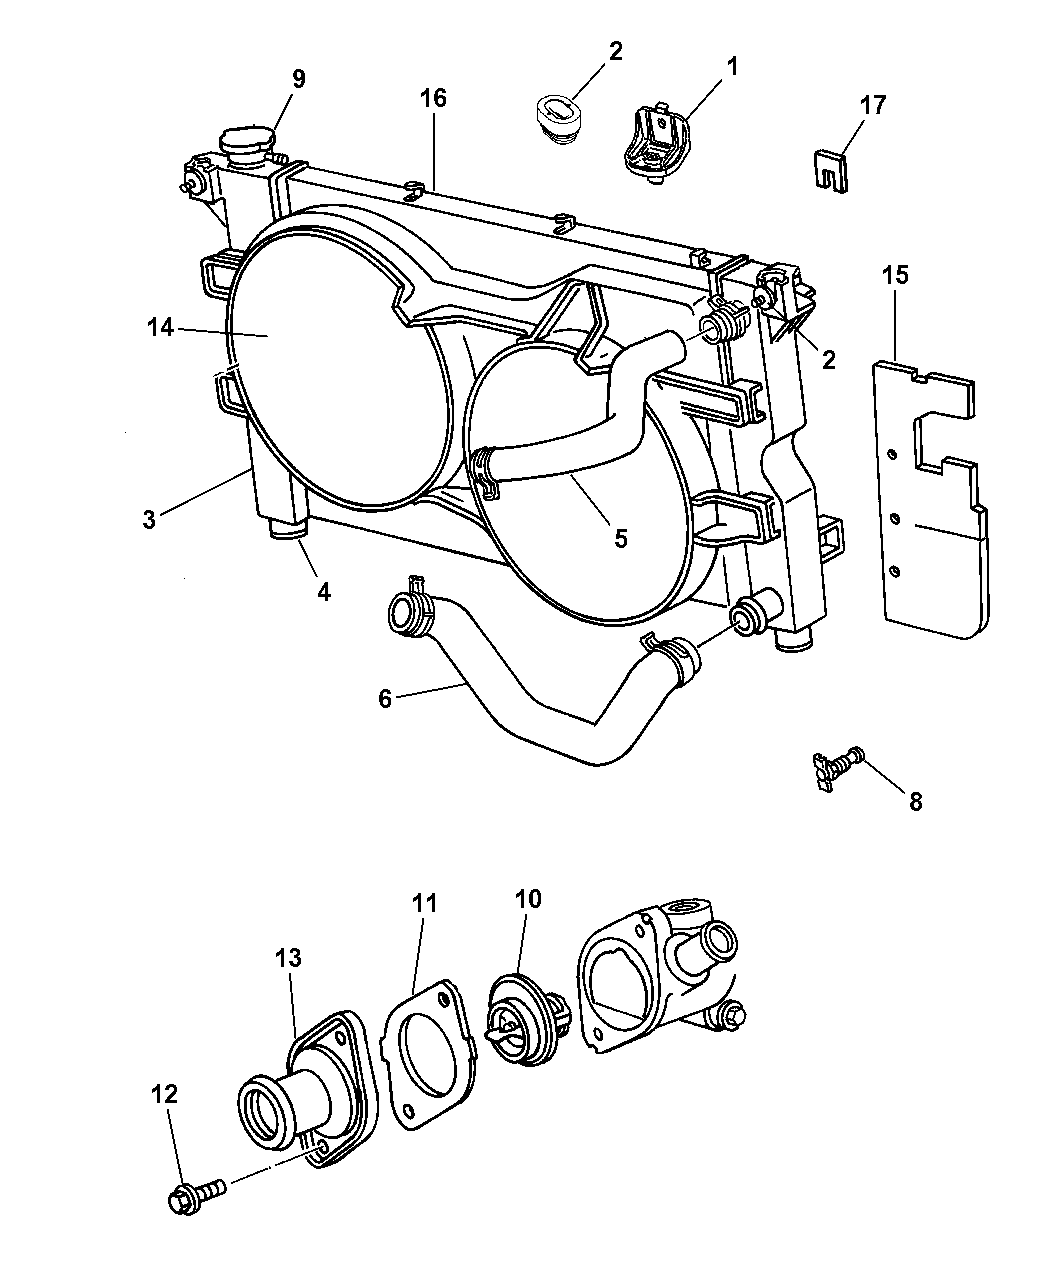 2005 Dodge Grand Caravan Radiator Diagram